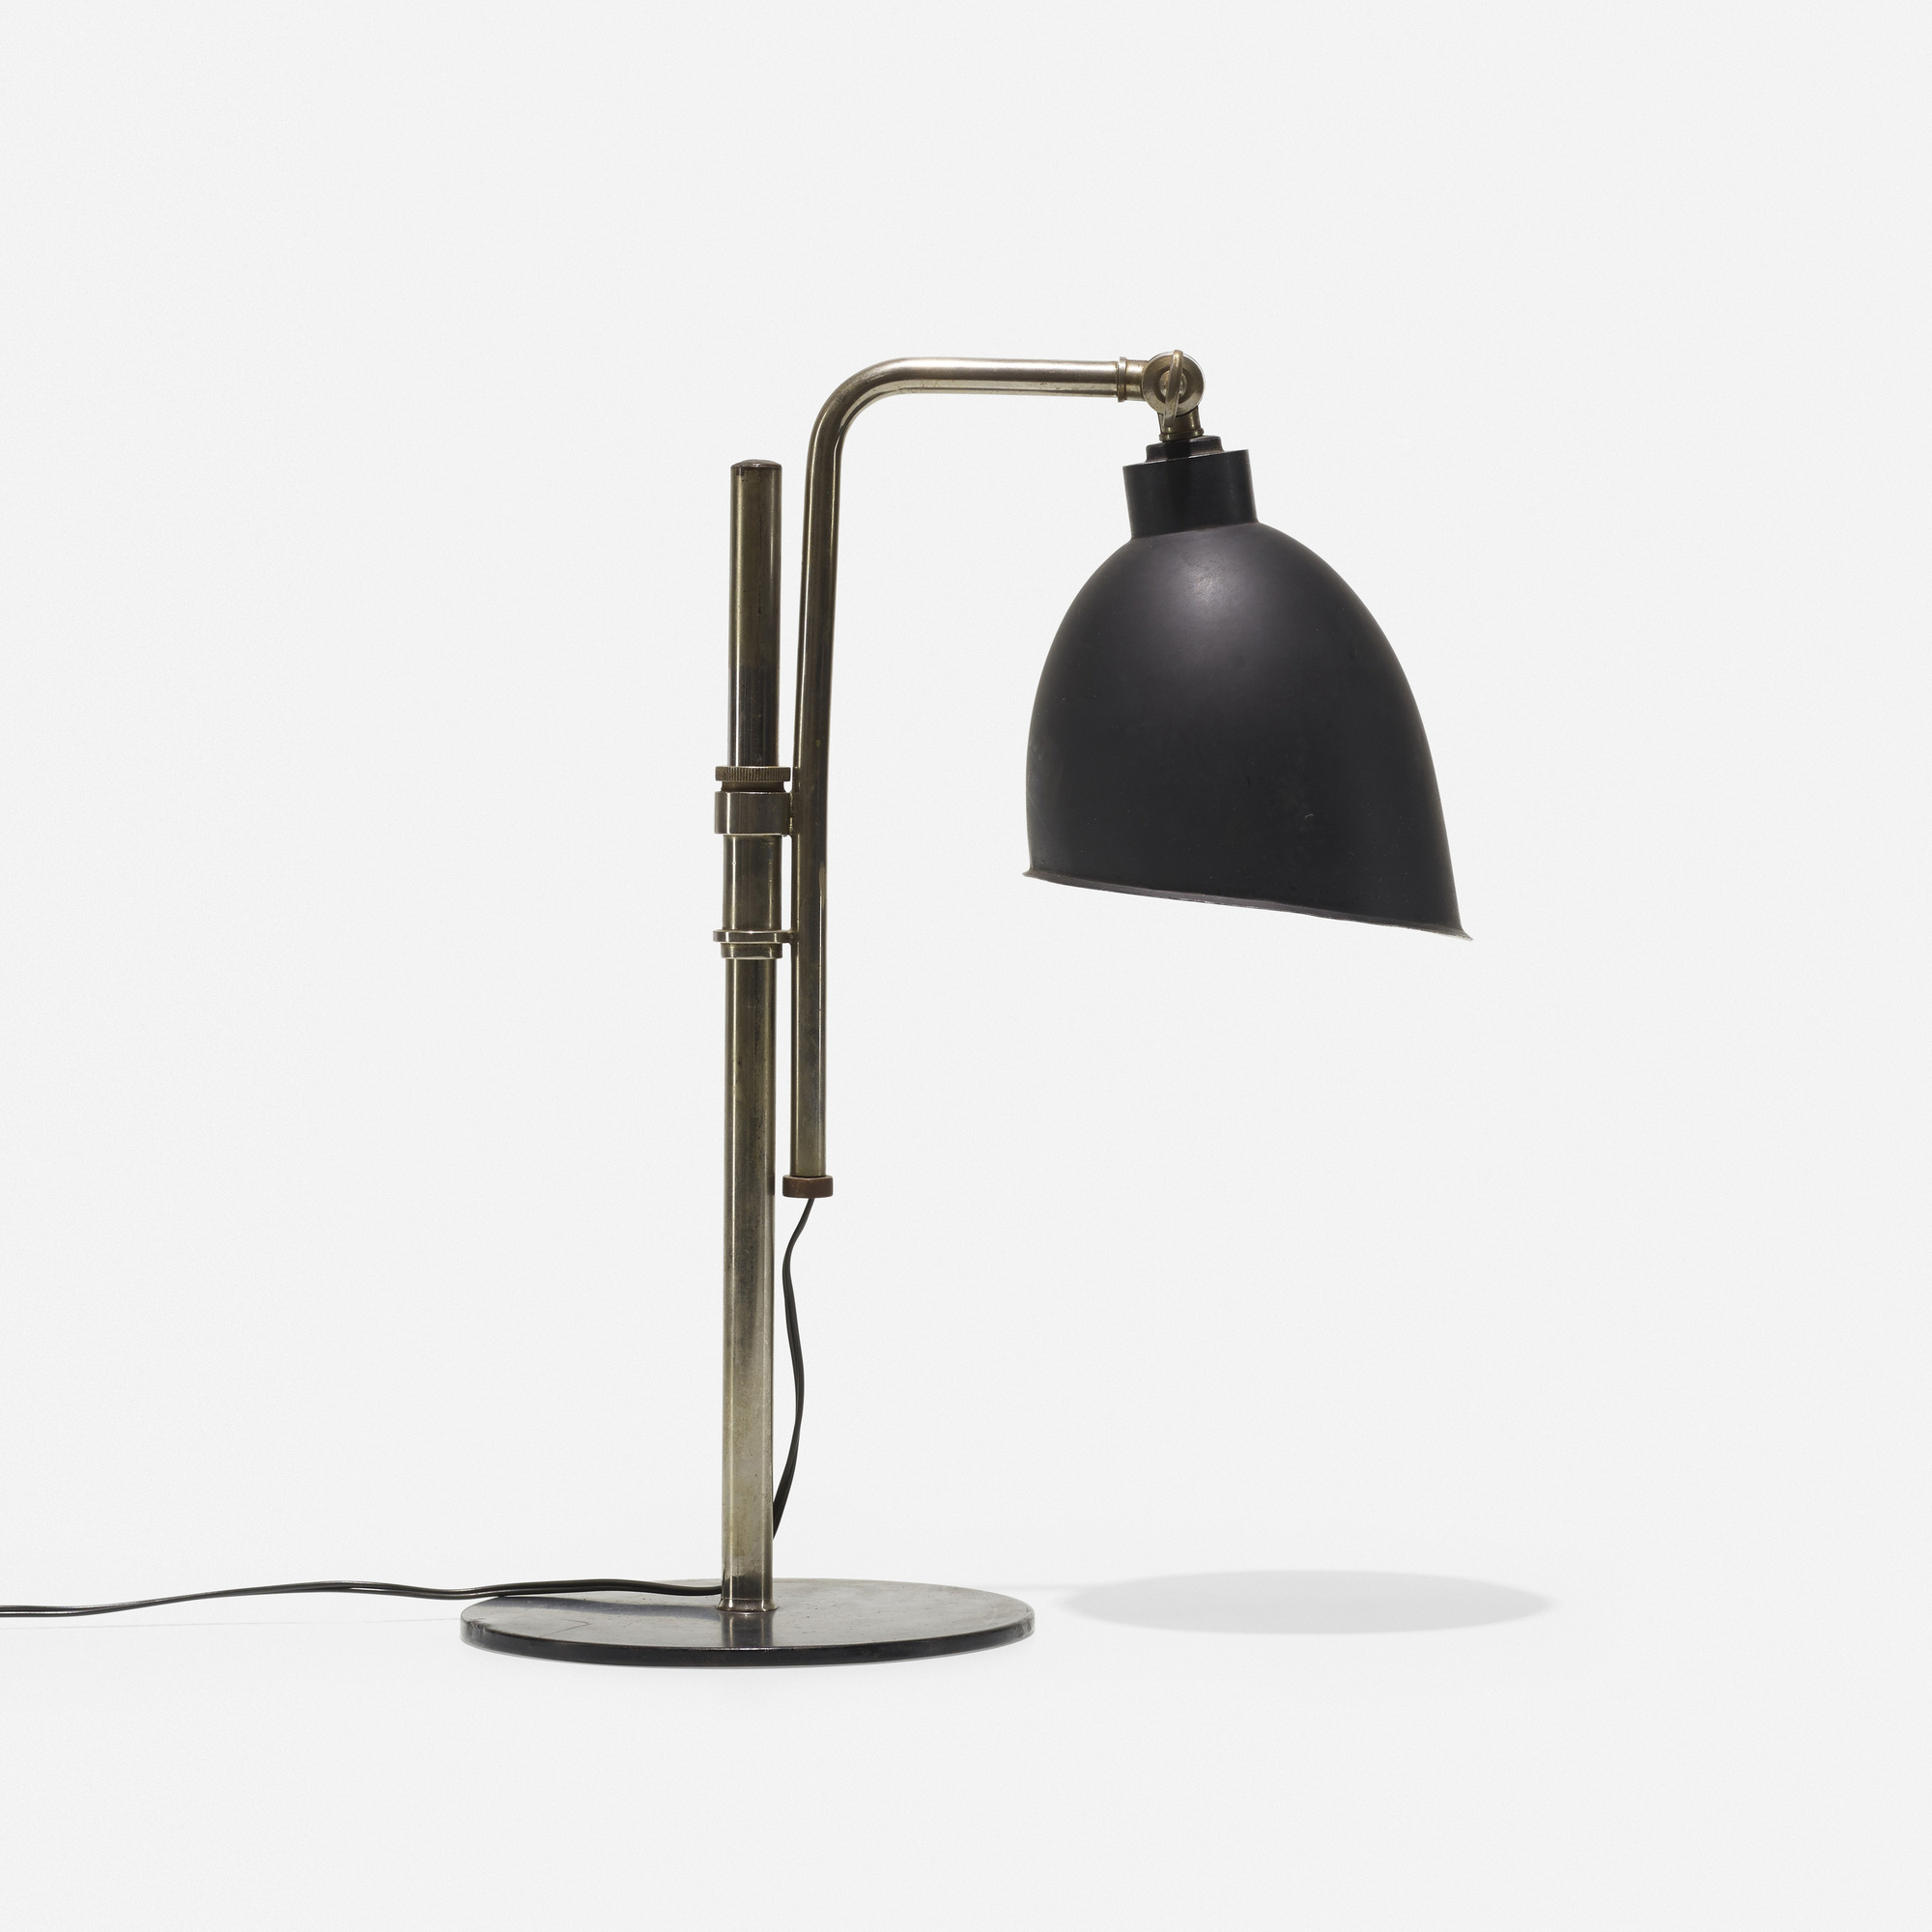 314: Christian Dell / Rondella table lamp (2 of 2)